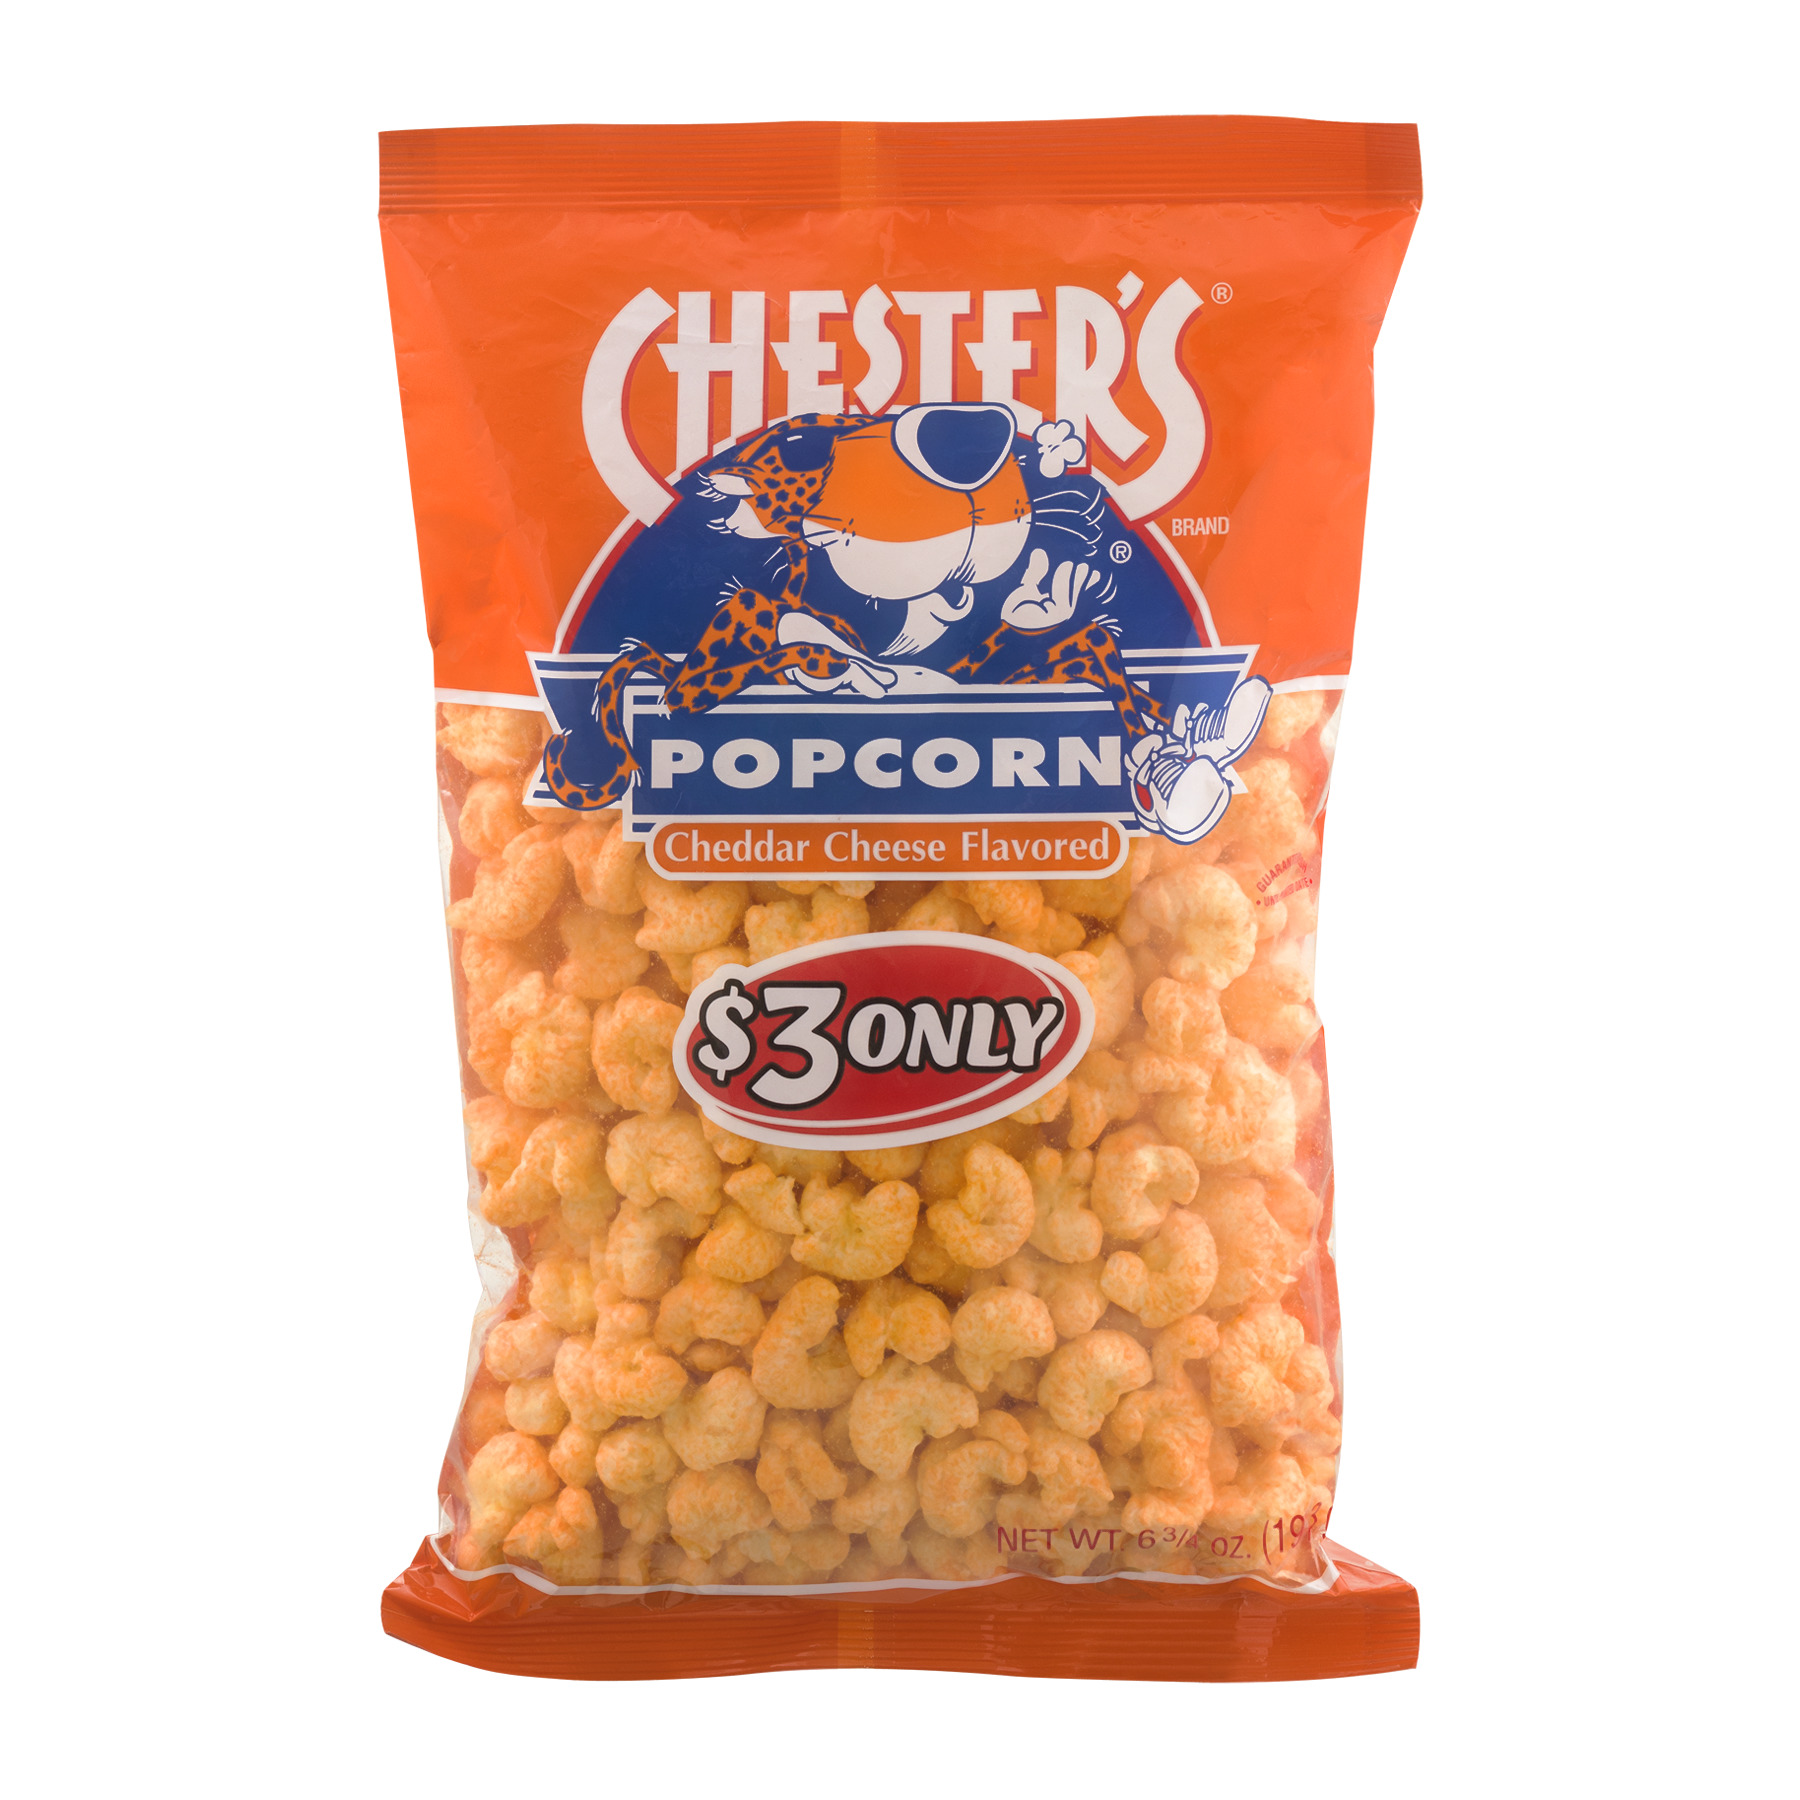 Chester's Popcorn Cheddar Cheese Flavored, 6.75 OZ